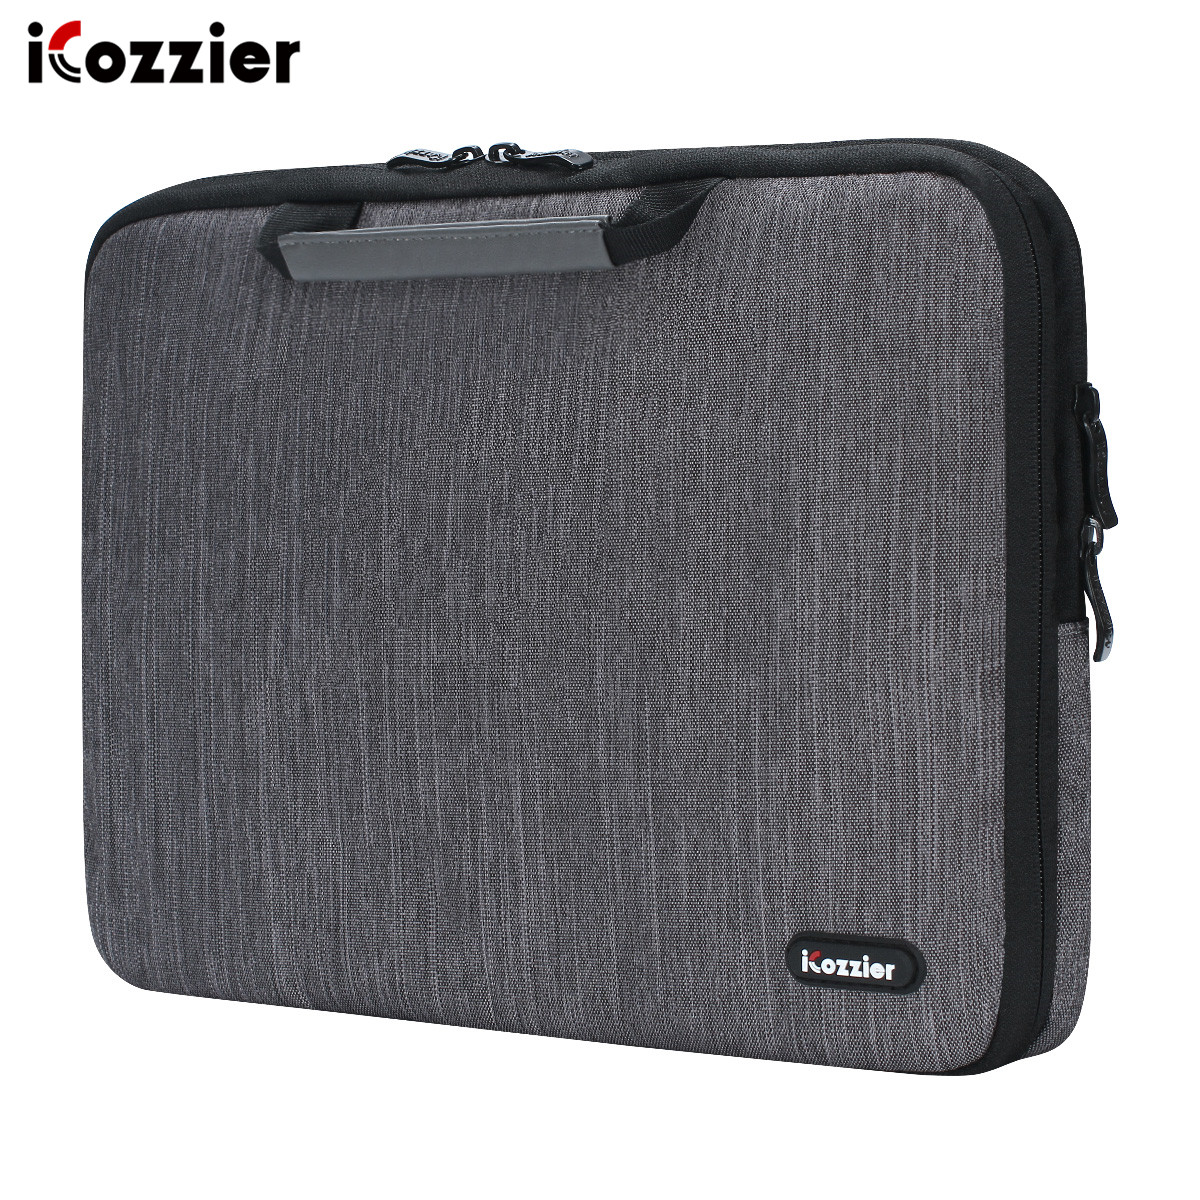 iCozzier 11.6/13./15.6/<font><b>17.3</b></font> inch handle electronic accessories strap laptop sleeve <font><b>case</b></font> bag protective bag for 15.6 <font><b>notebook</b></font> image